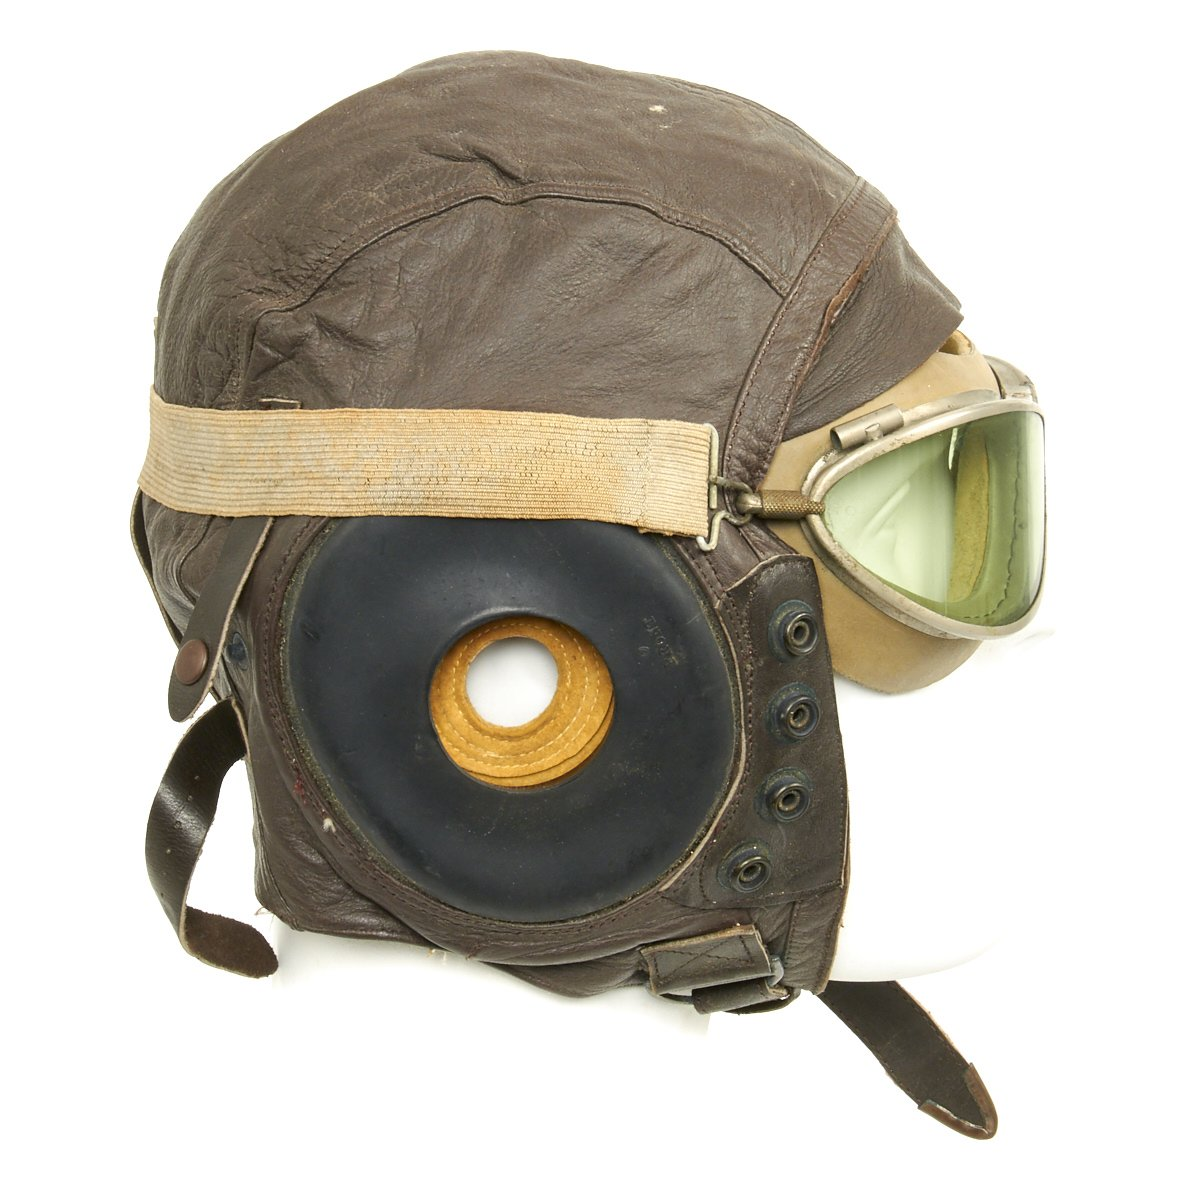 8e0ece32e01 Original U.S. WWII Army Air Force Aviator Flight Helmet Set - Type A-11  Helmet